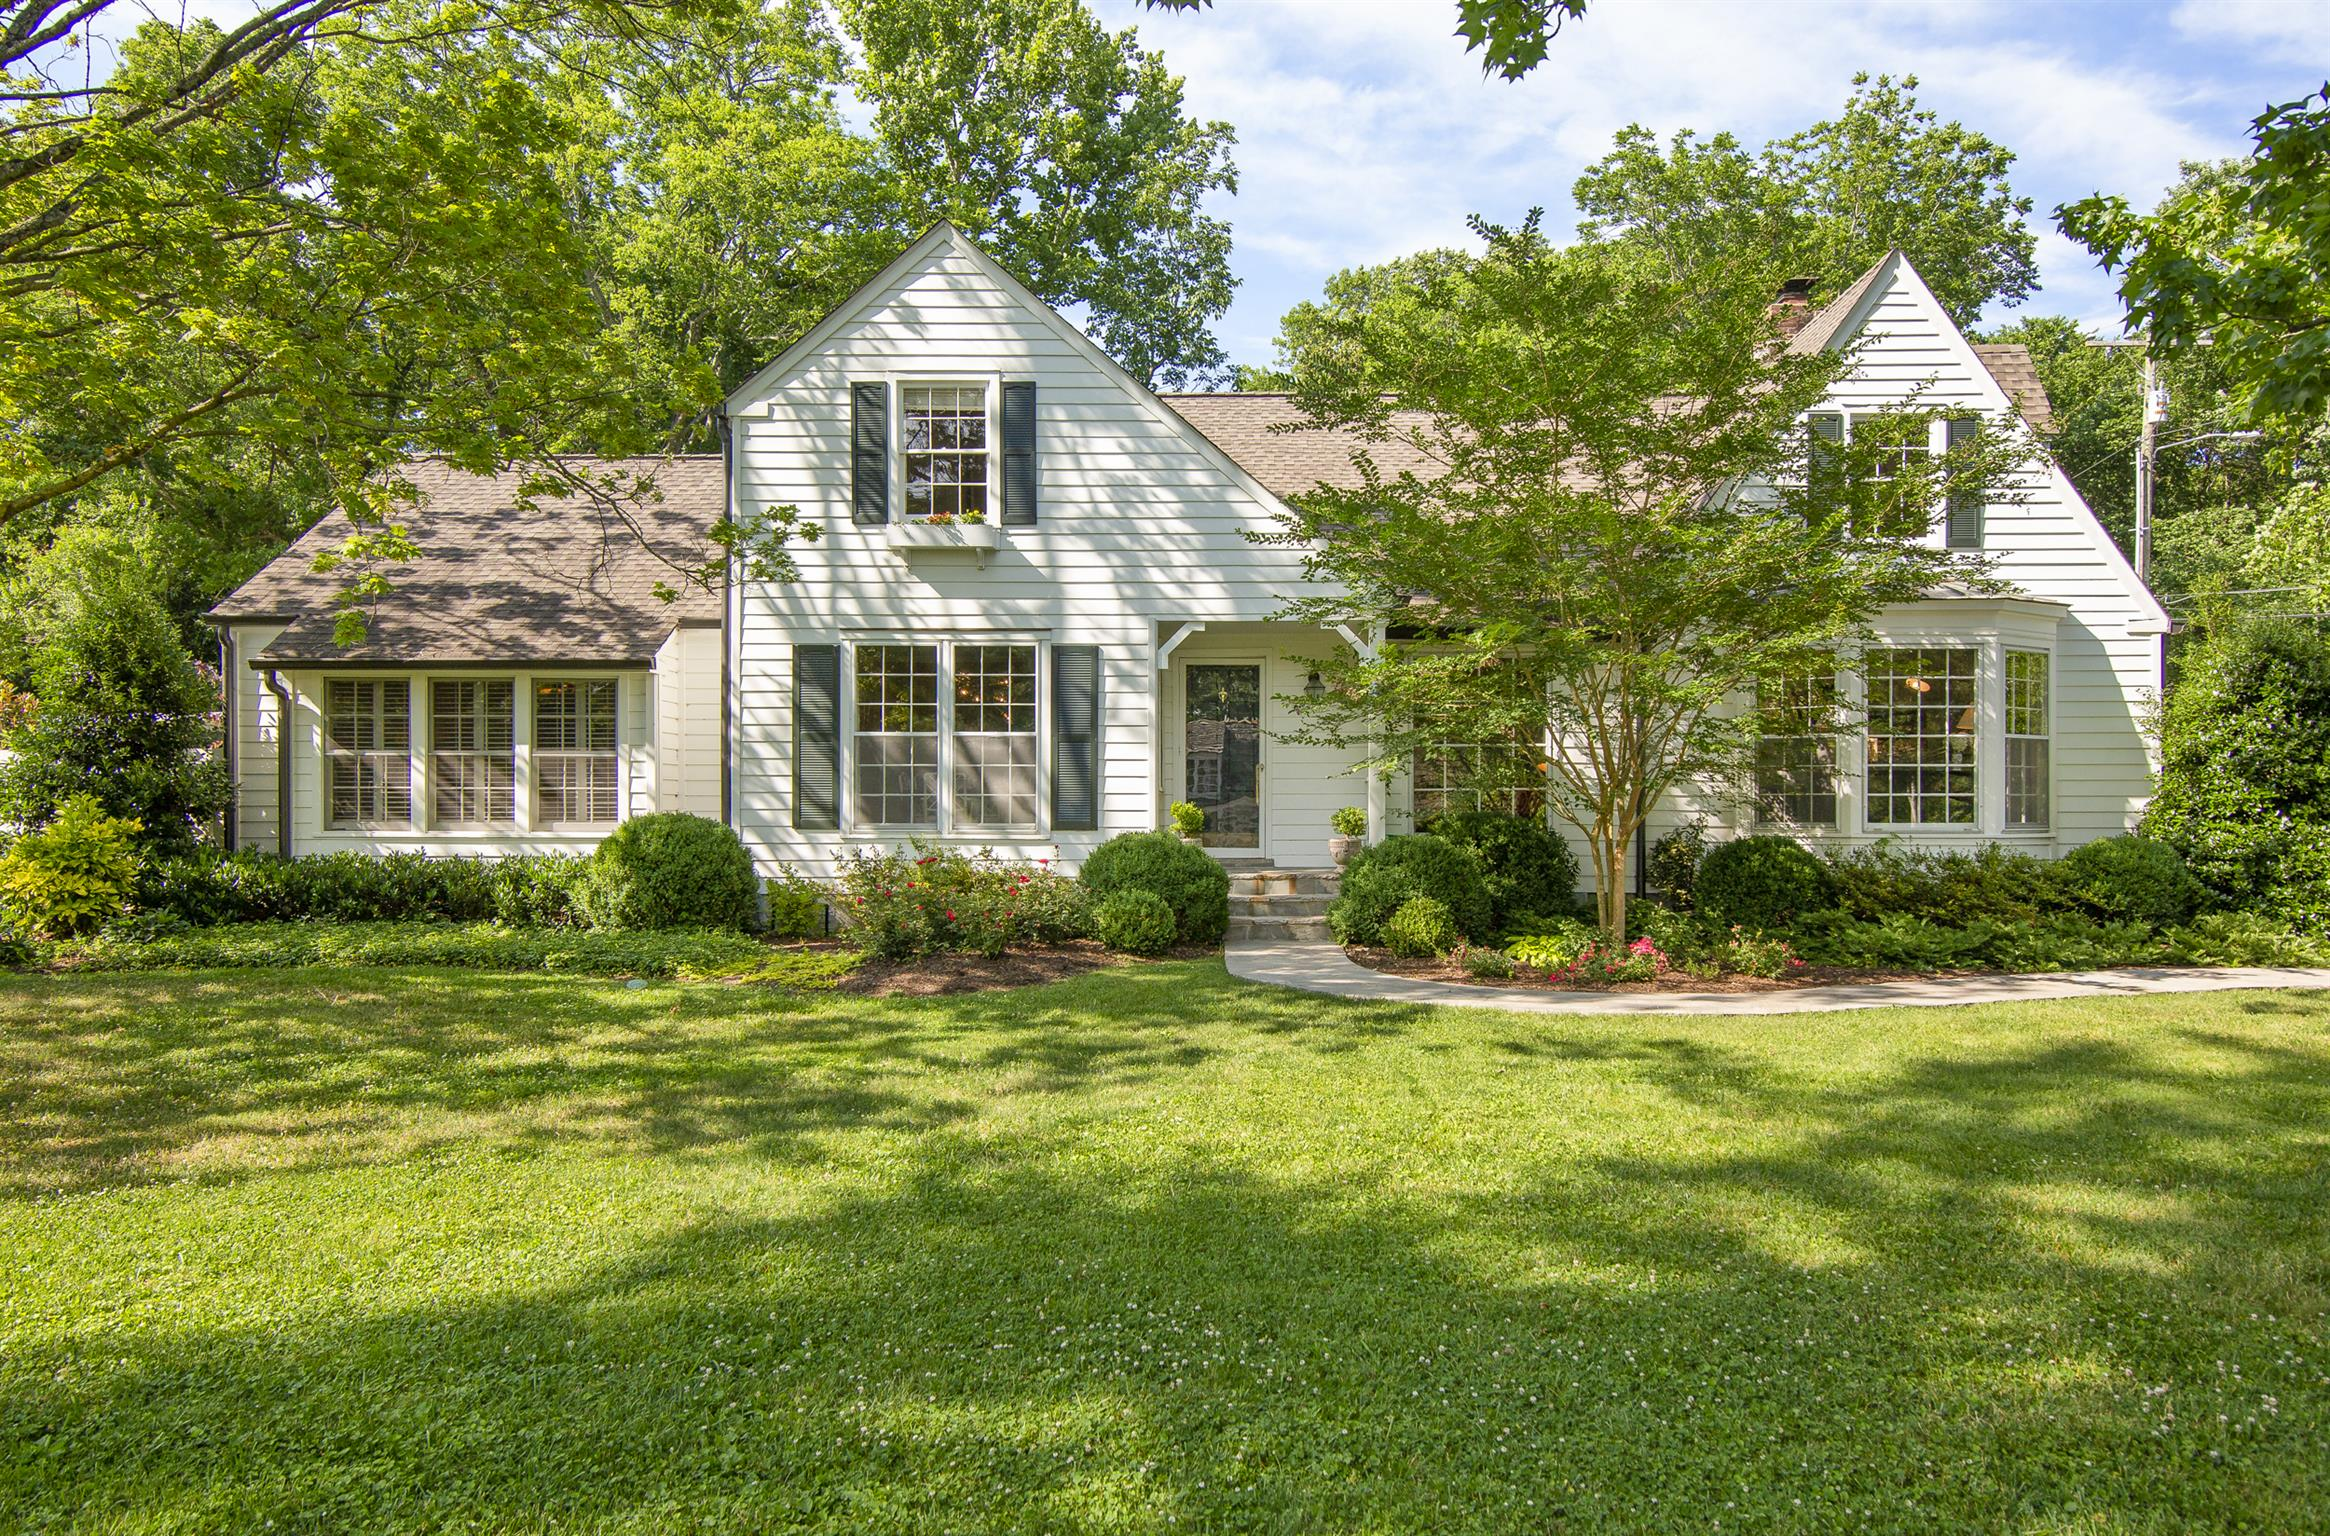 214 Scotland Pl, Belle Meade, Tennessee